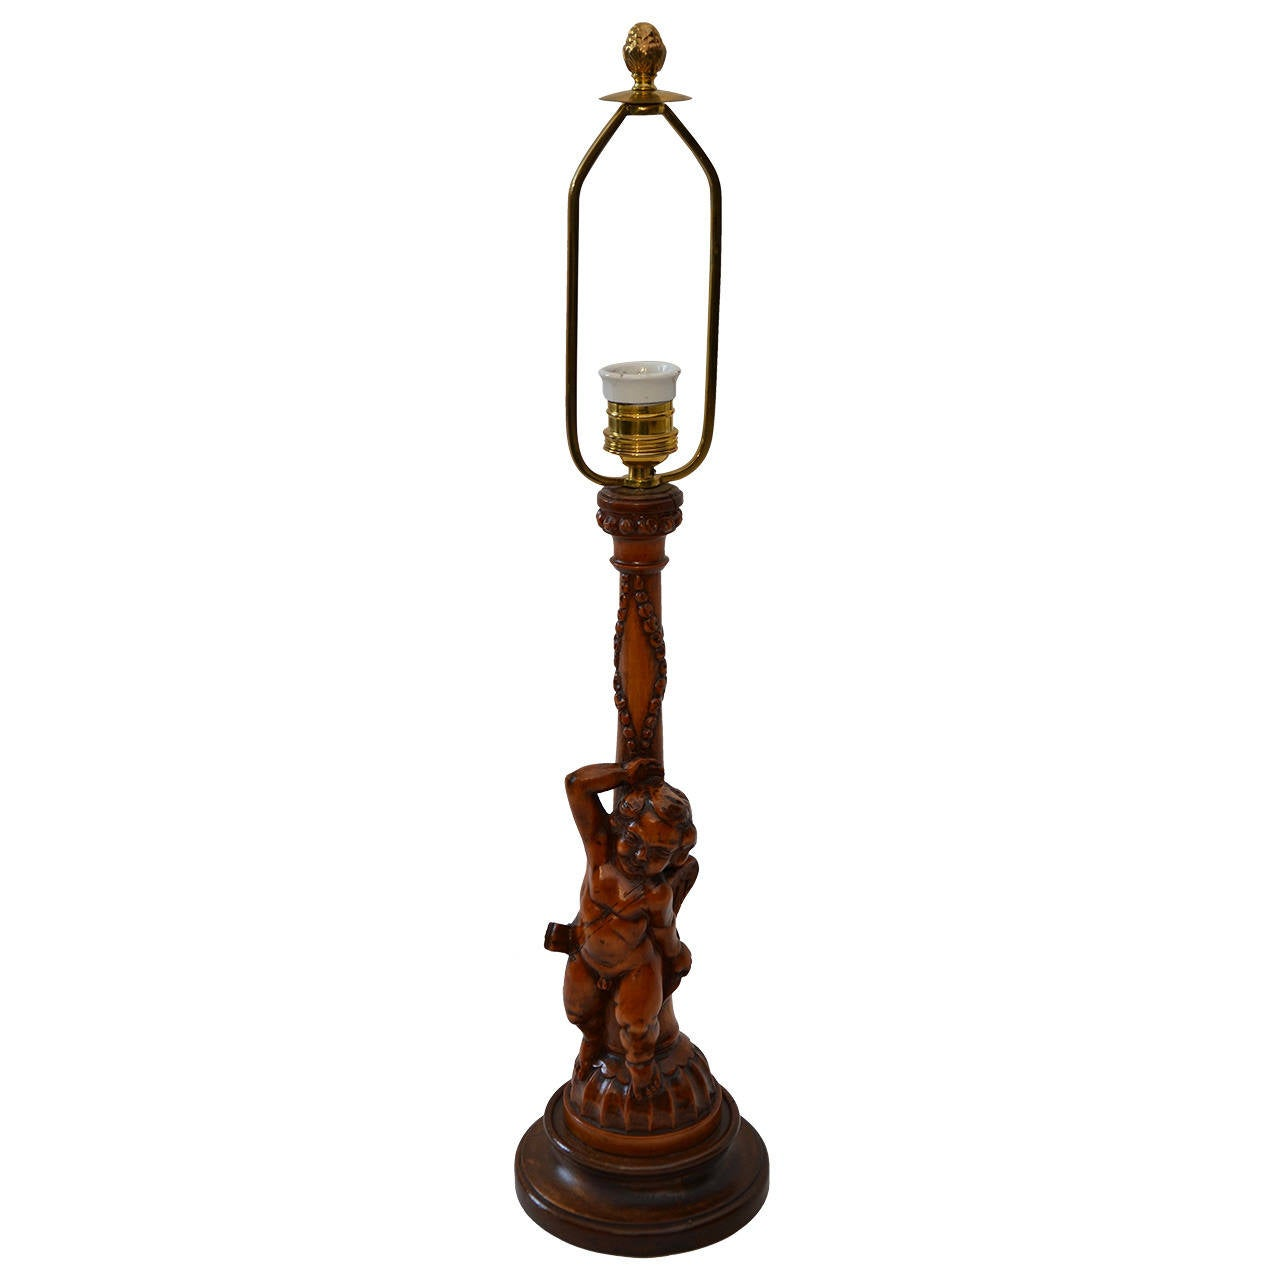 carved wooden table lamp for sale at 1stdibs. Black Bedroom Furniture Sets. Home Design Ideas